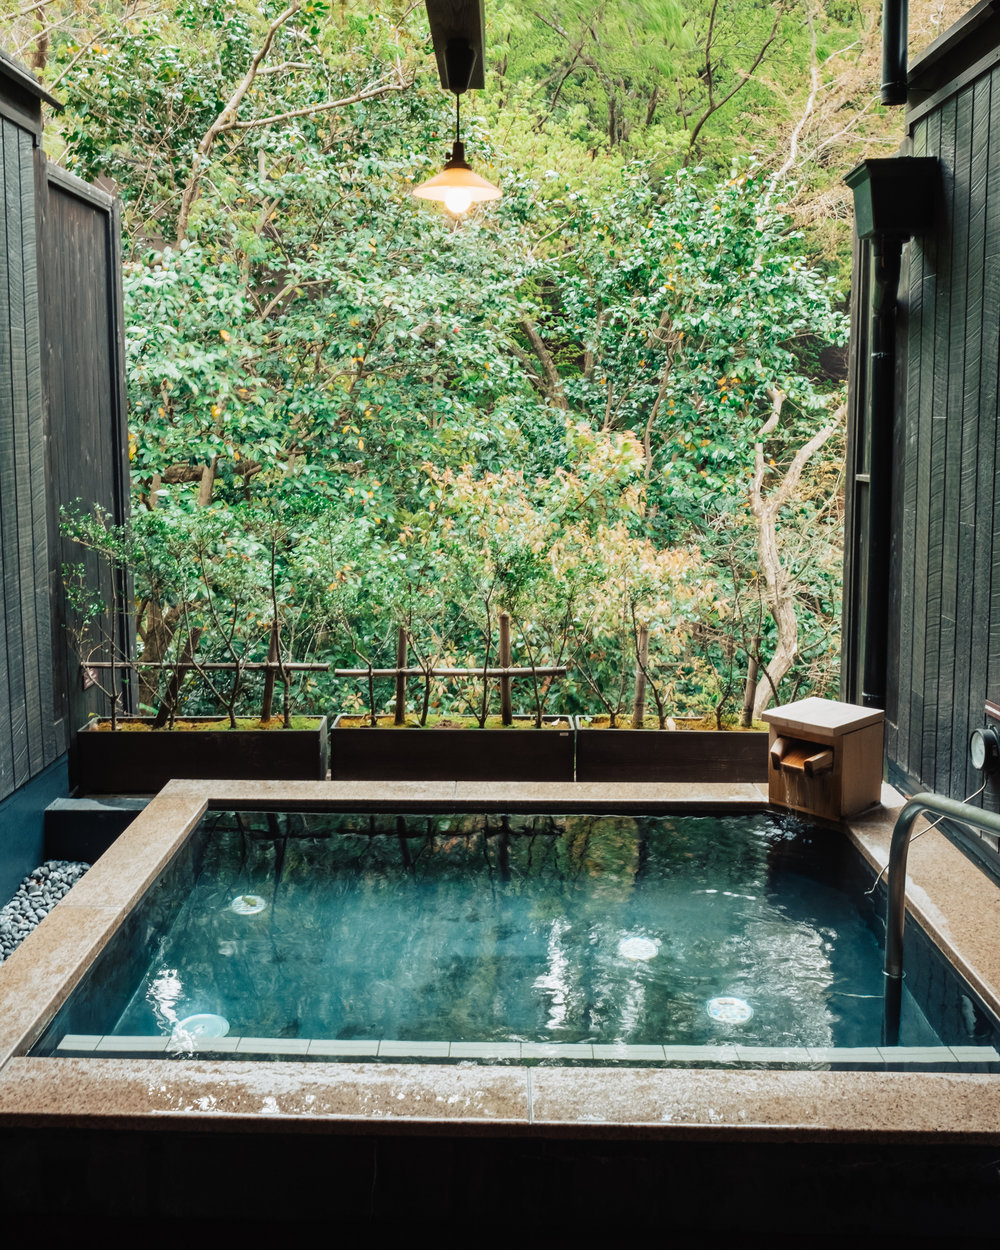 My private onsen at Hakone Yuryo.